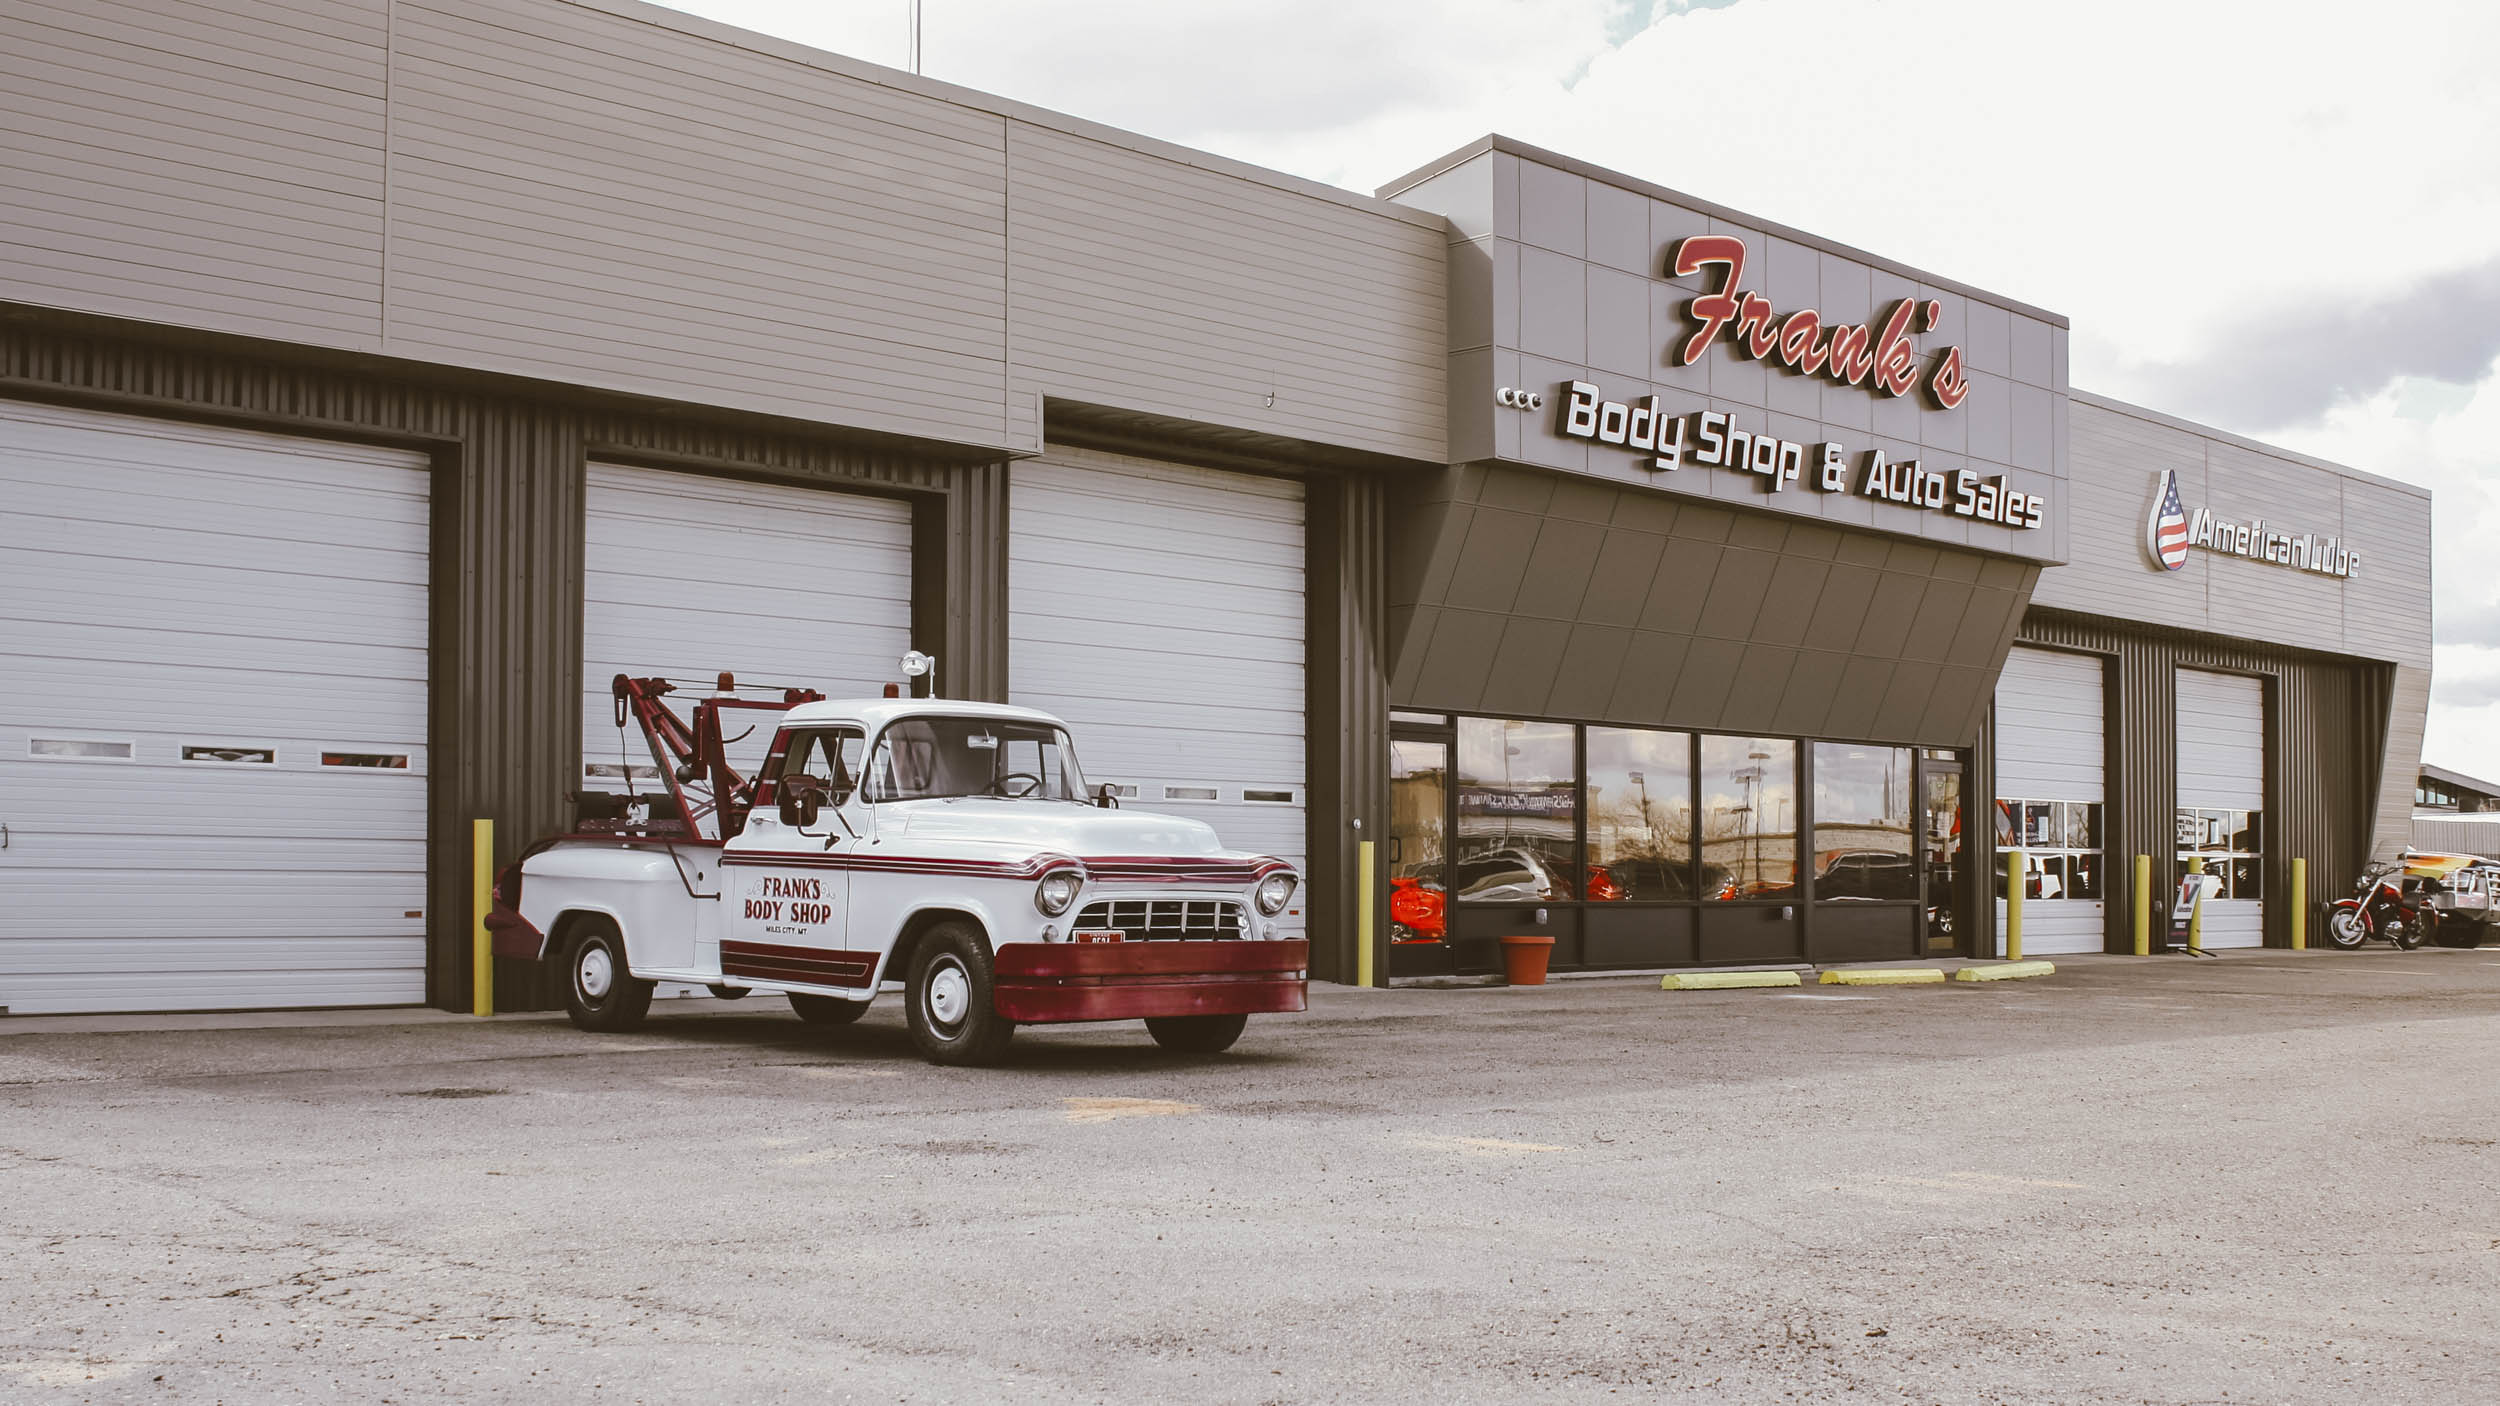 Frank's Body Shop moved to its current location in 1974, when the '55 was left in the yard for years. Tim said he got frustrated watching it sit and rust, so he dragged it in and started working on it.